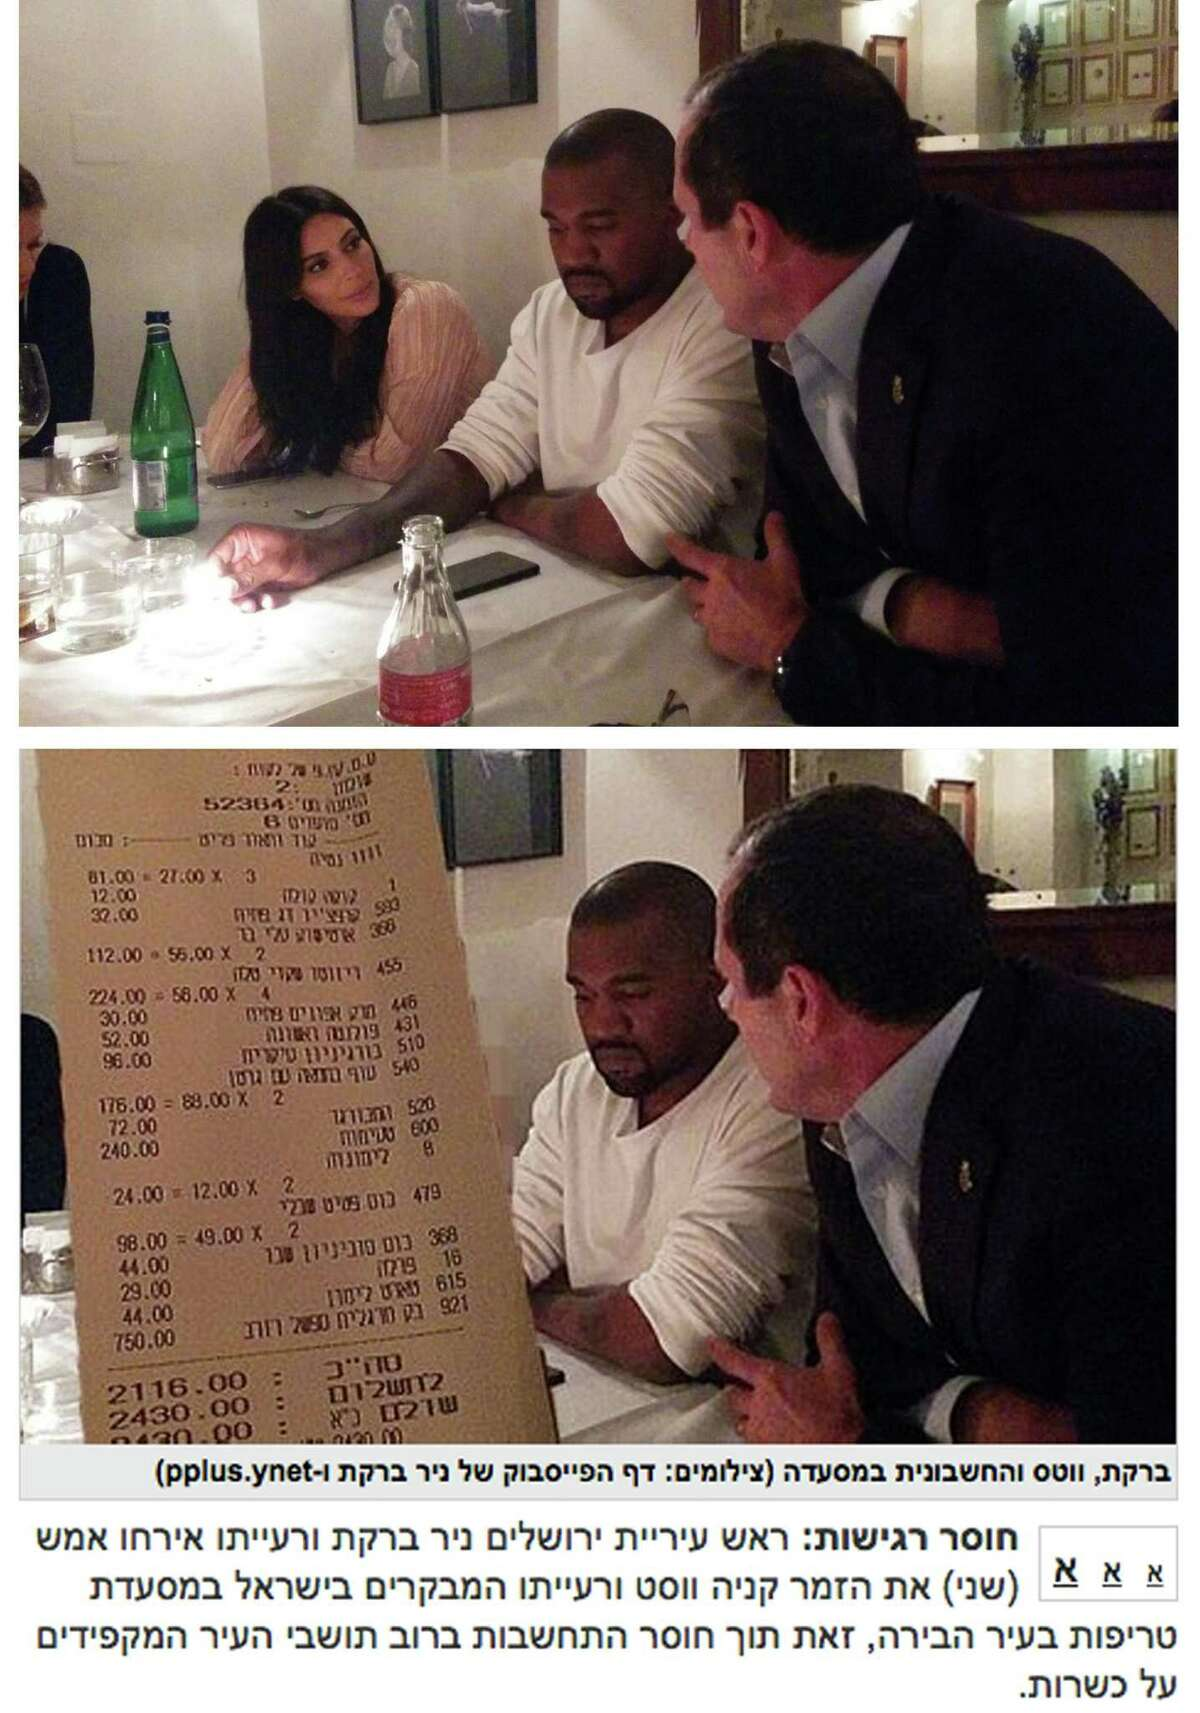 """This combination of two images shows a photo released by the Jerusalem Mayor's Office with Kim Kardashian, left, Kanye West, center, and Jerusalem Mayor Nir Barkat, right, at a Jerusalem restaurant during their visit on Monday, April 13, 2015, top, and a screen shot from the ultra-Orthodox Kikar HaShabbat website manipulated to obscure Kardashian. Nissim Ben Haim, an editor at the website, said Wednesday, April 15, 2015, they removed Kardashian because she is a """"pornographic symbol"""" who contradicts ultra-Orthodox values. (Sapir Peles/Jerusalem Municipality spokesman's office and Kikar HaShabbat website via AP)"""